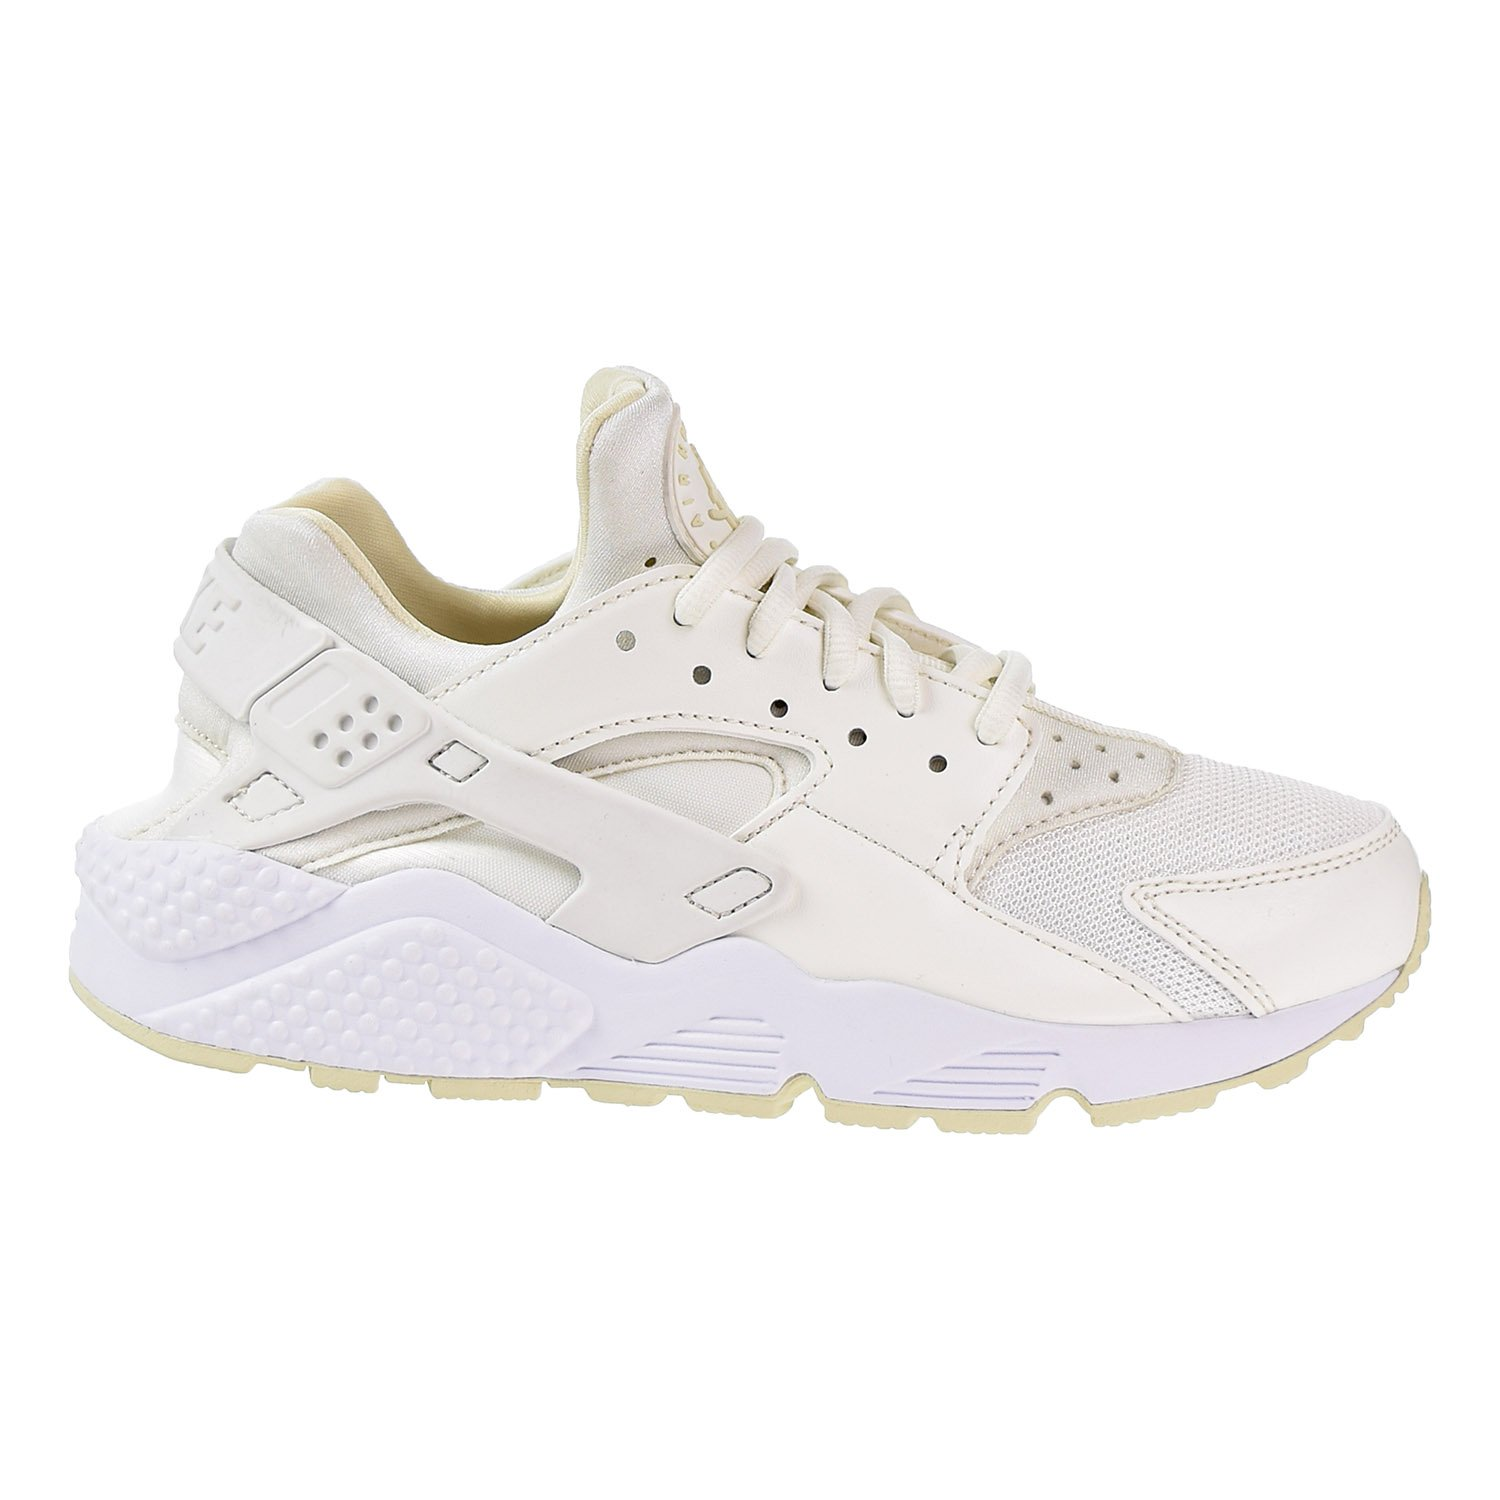 competitive price 9a086 d9f01 Galleon - NIKE Women s WMNS Air Huarache Run Trainers, White (Sail White Fossil  115), 3.5 UK 36.5 EU